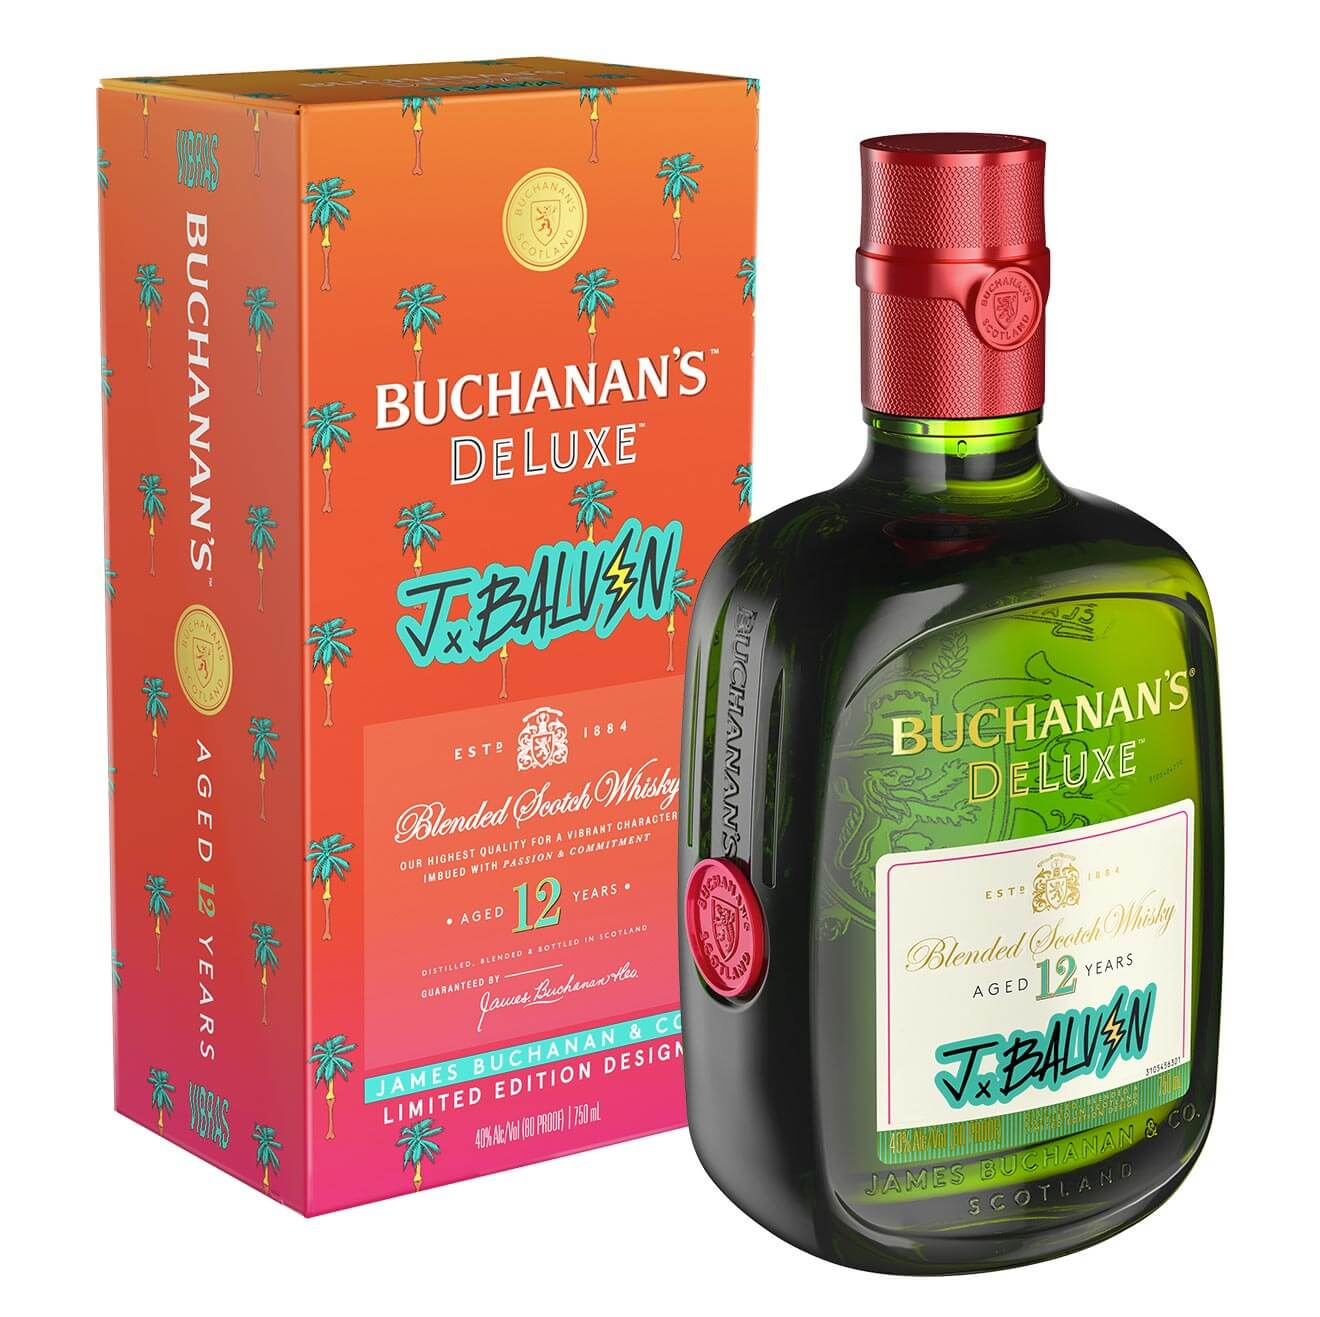 Buchanan's DeLuxe Blended Scotch Whisky x J Balvin Limited Edition, bottle and packaging on white